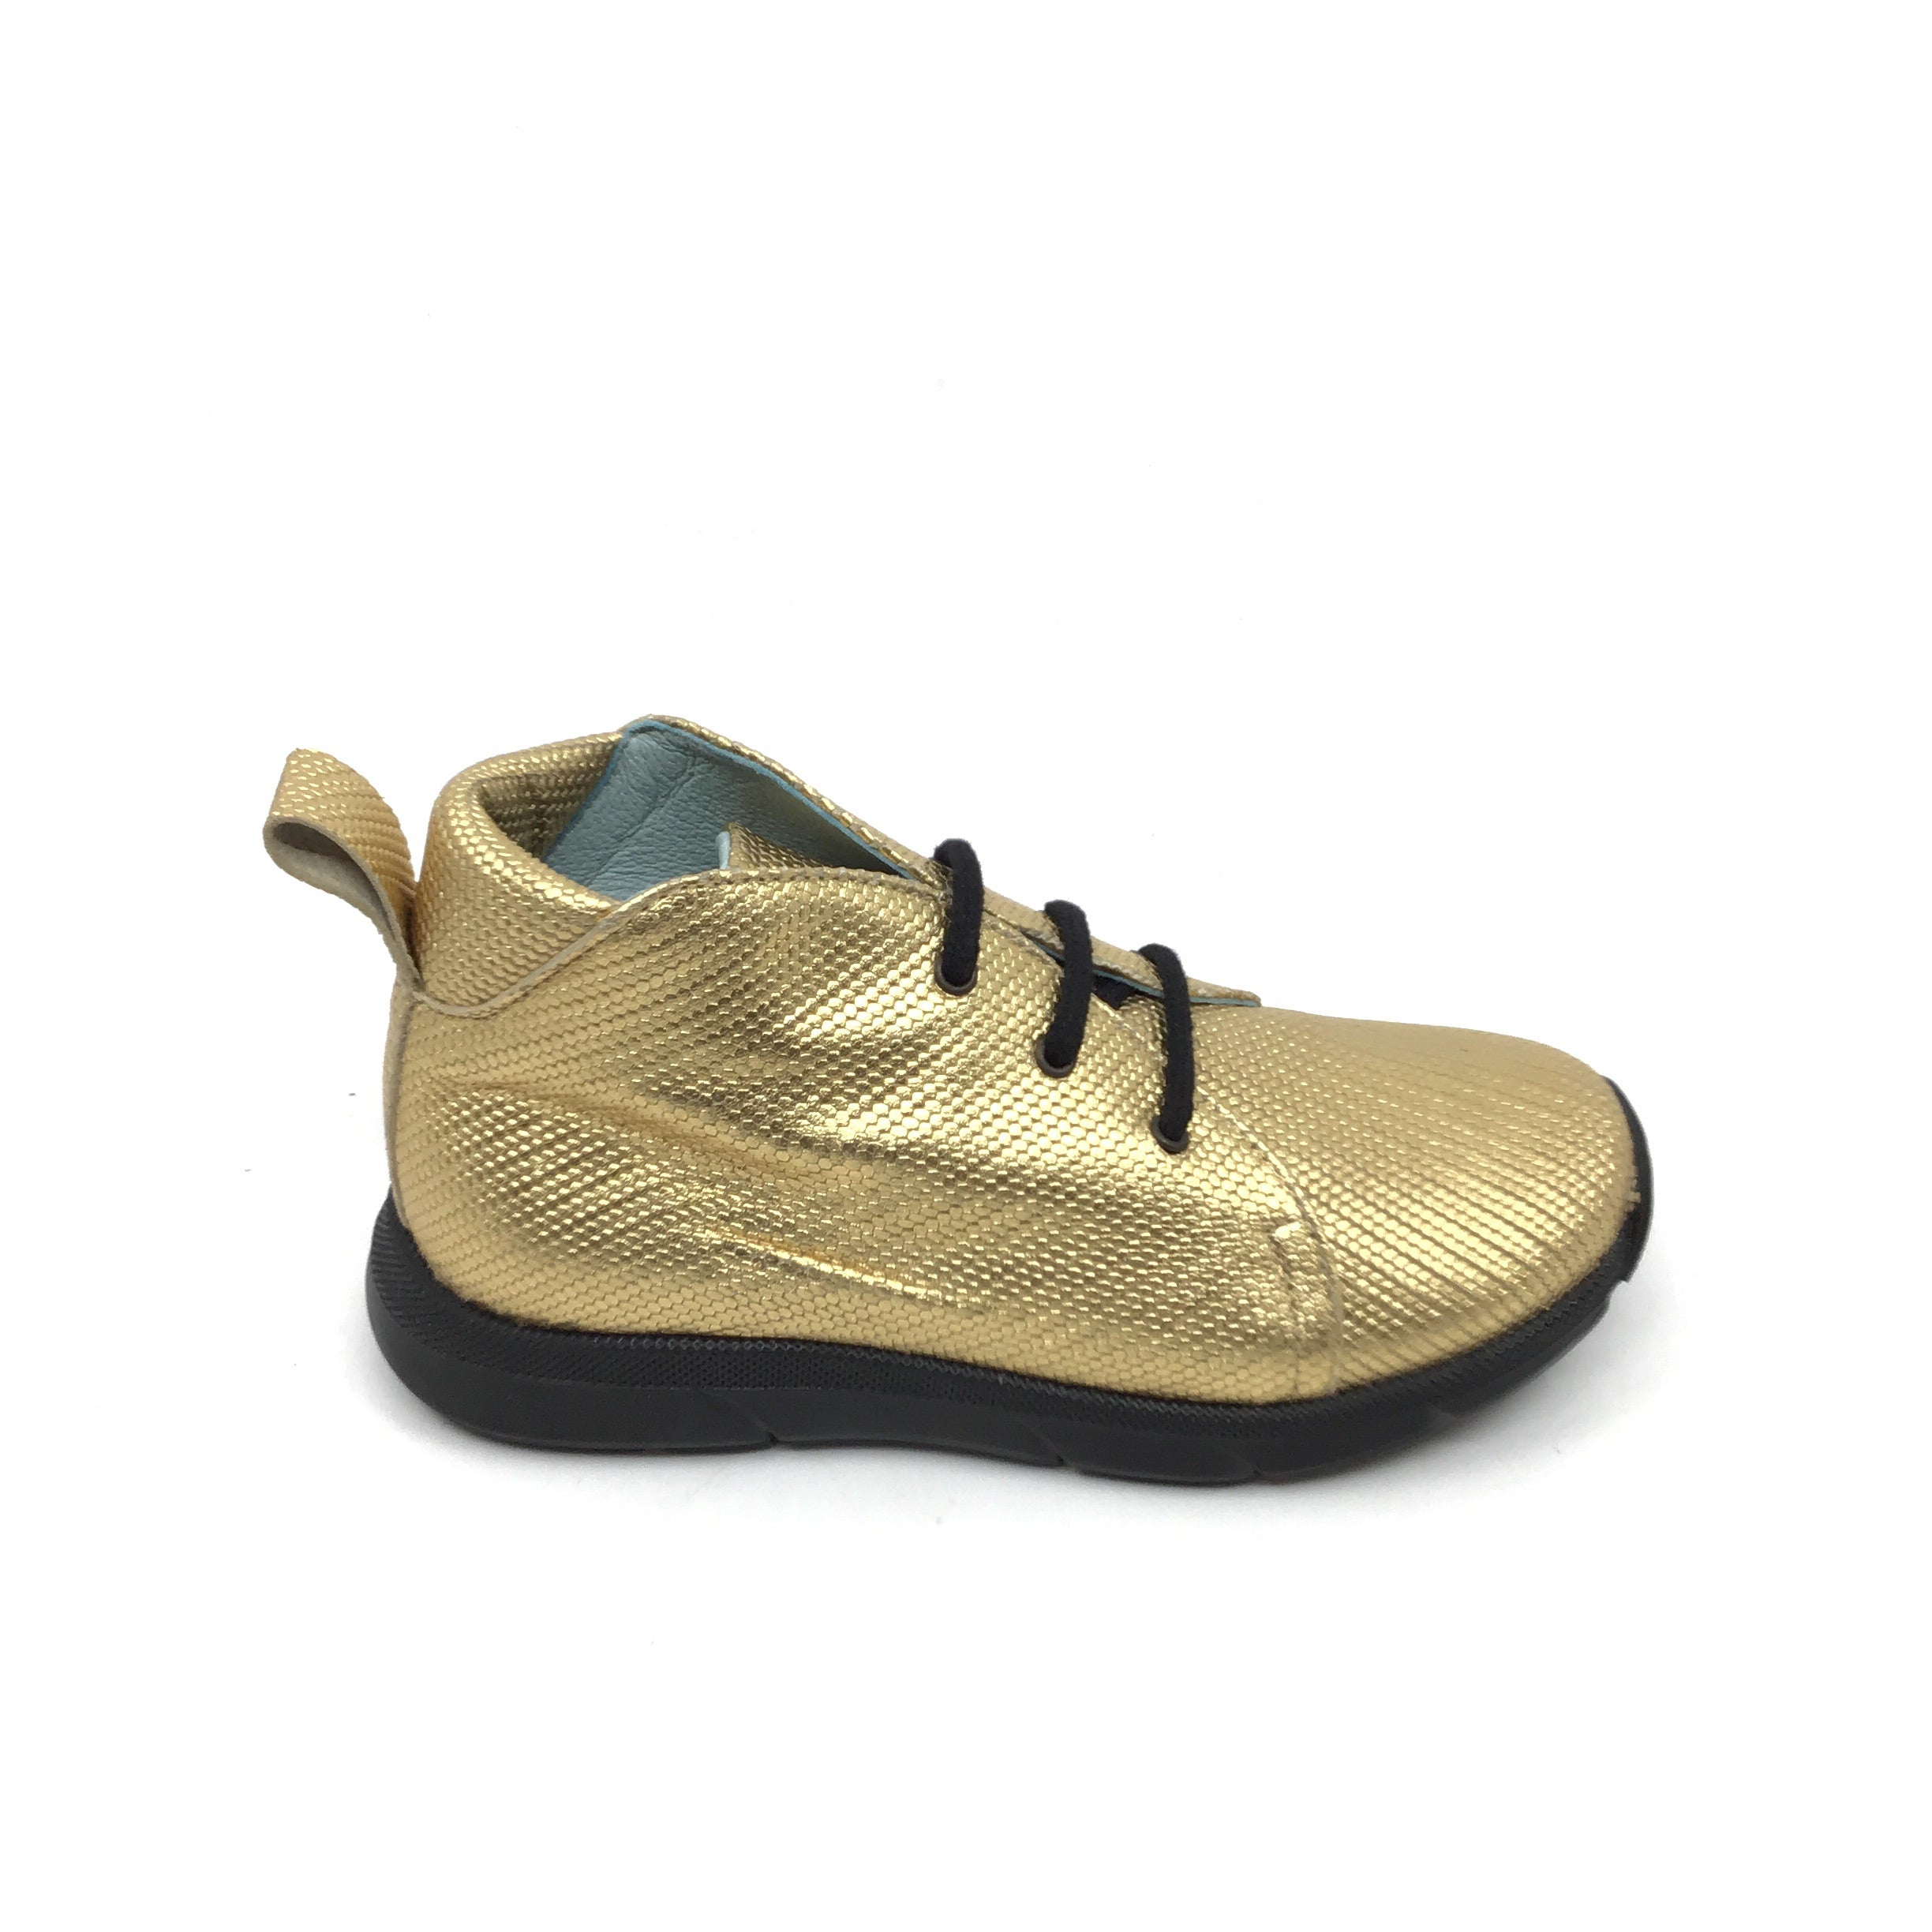 Gold Textured Metallic Shoe